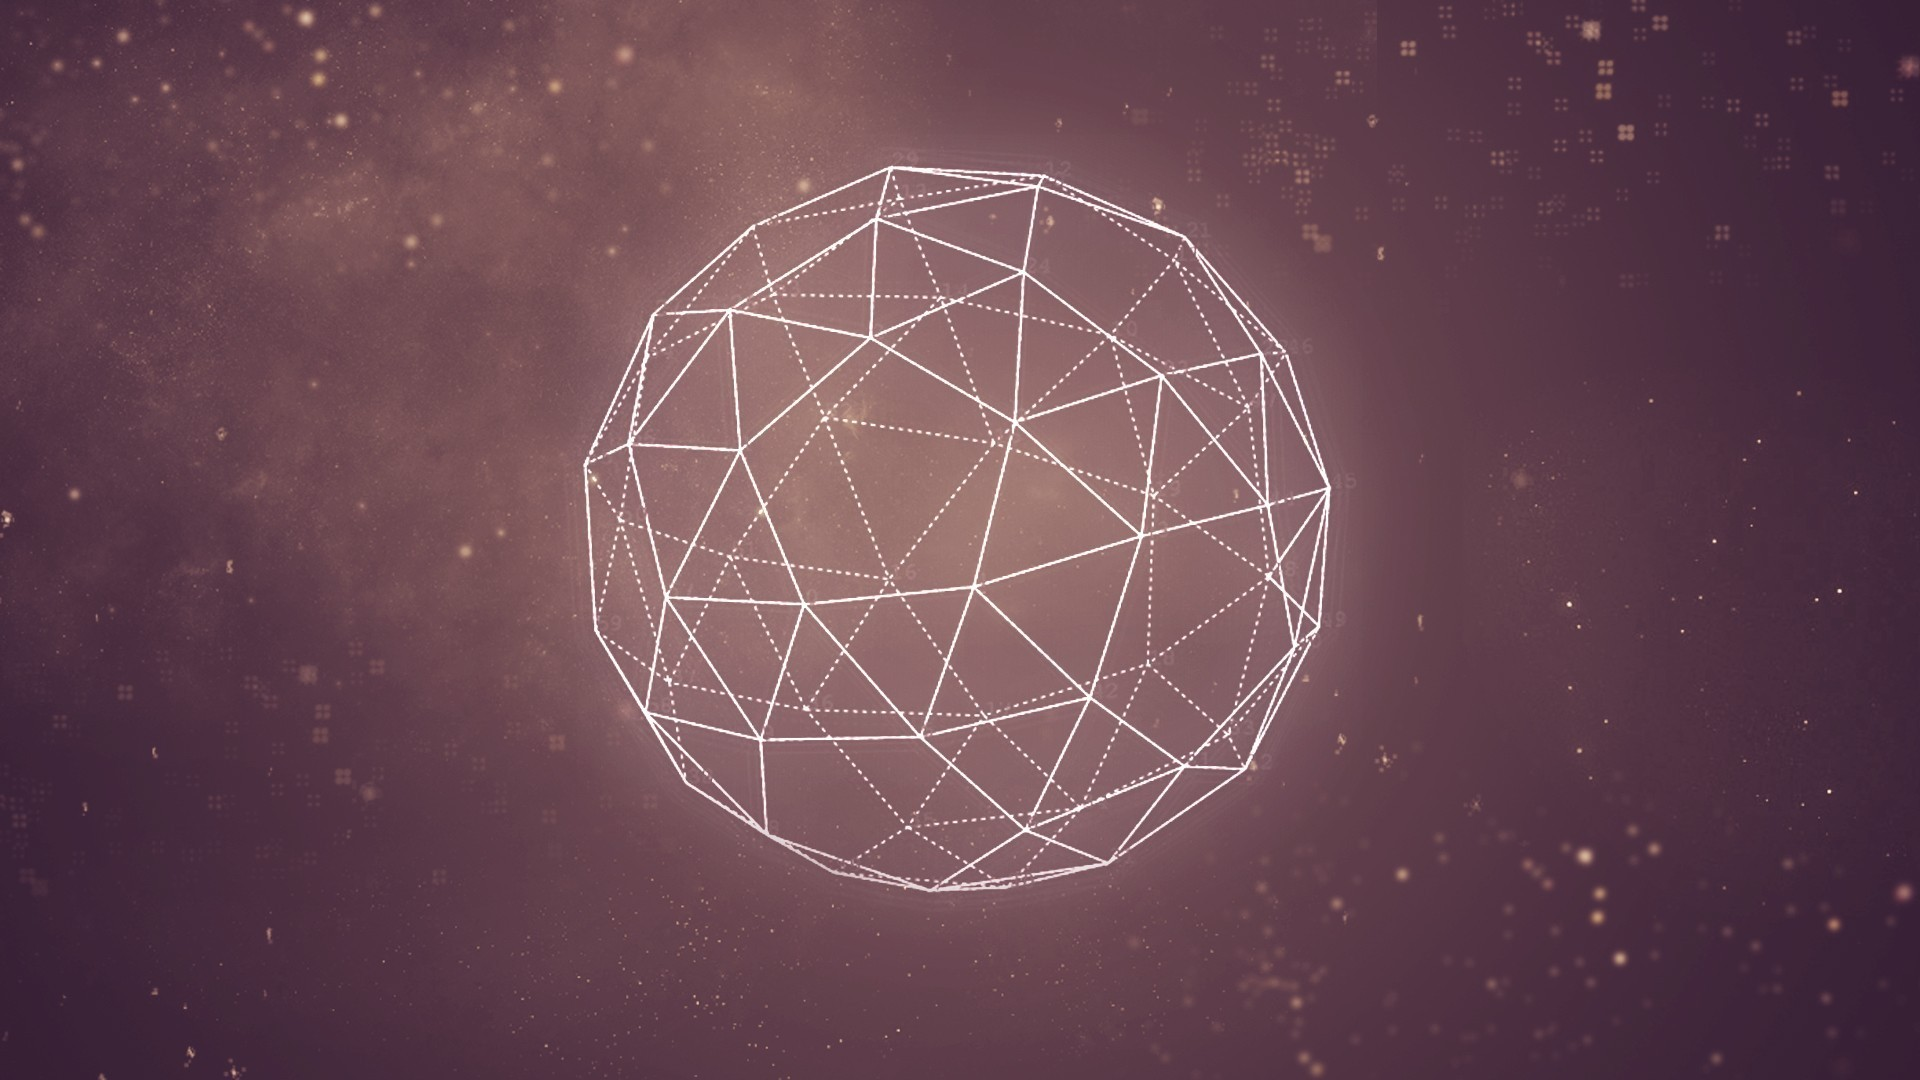 Cool Geometric Wallpapers (81+ images)